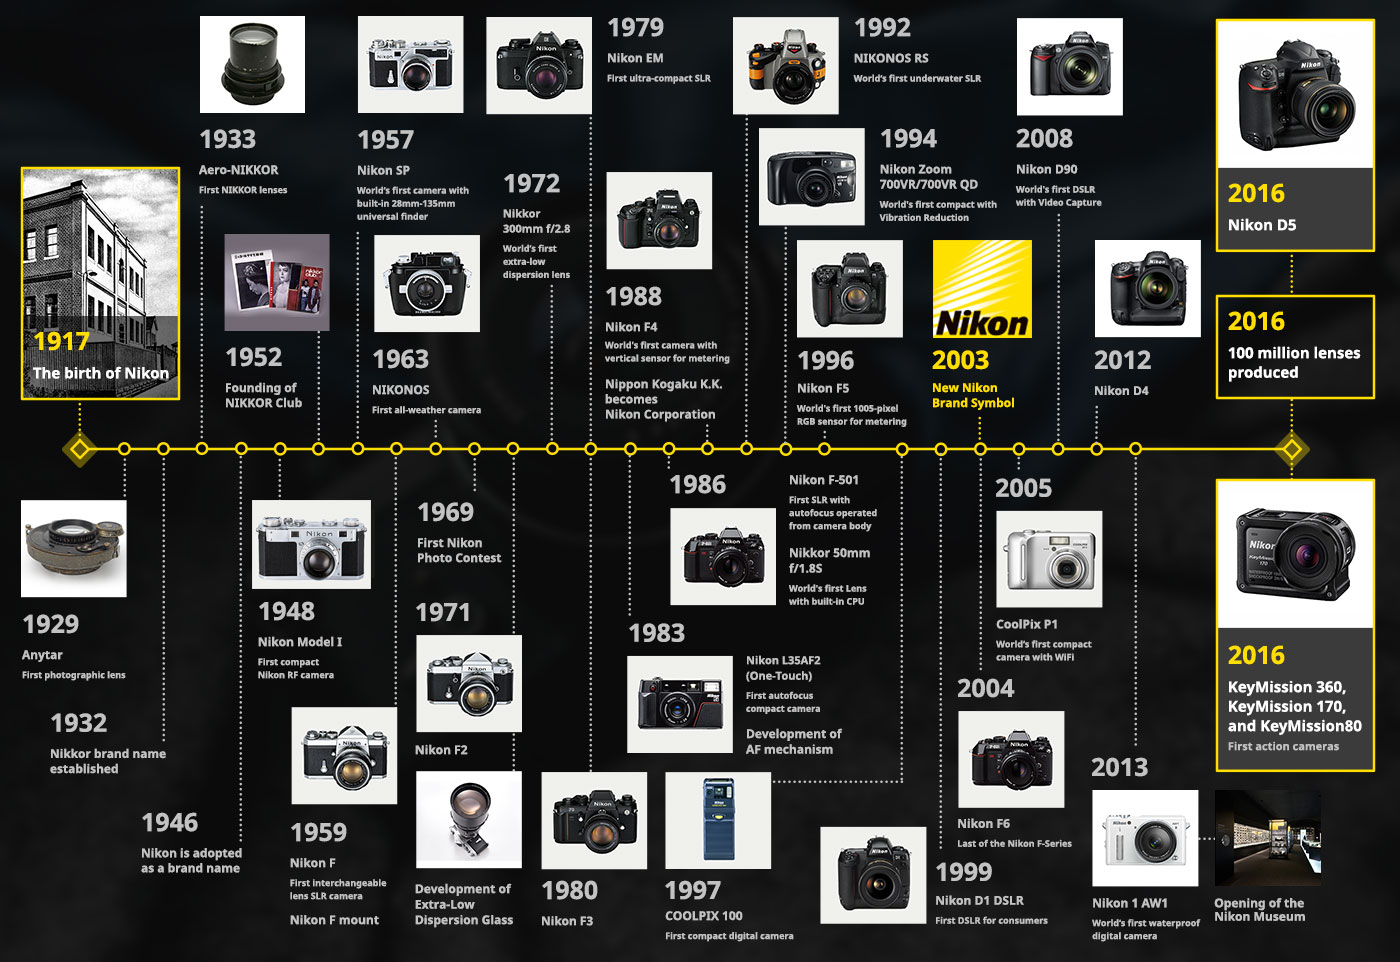 Nikon DSLR camera sales figures (estimations) - Nikon Rumors